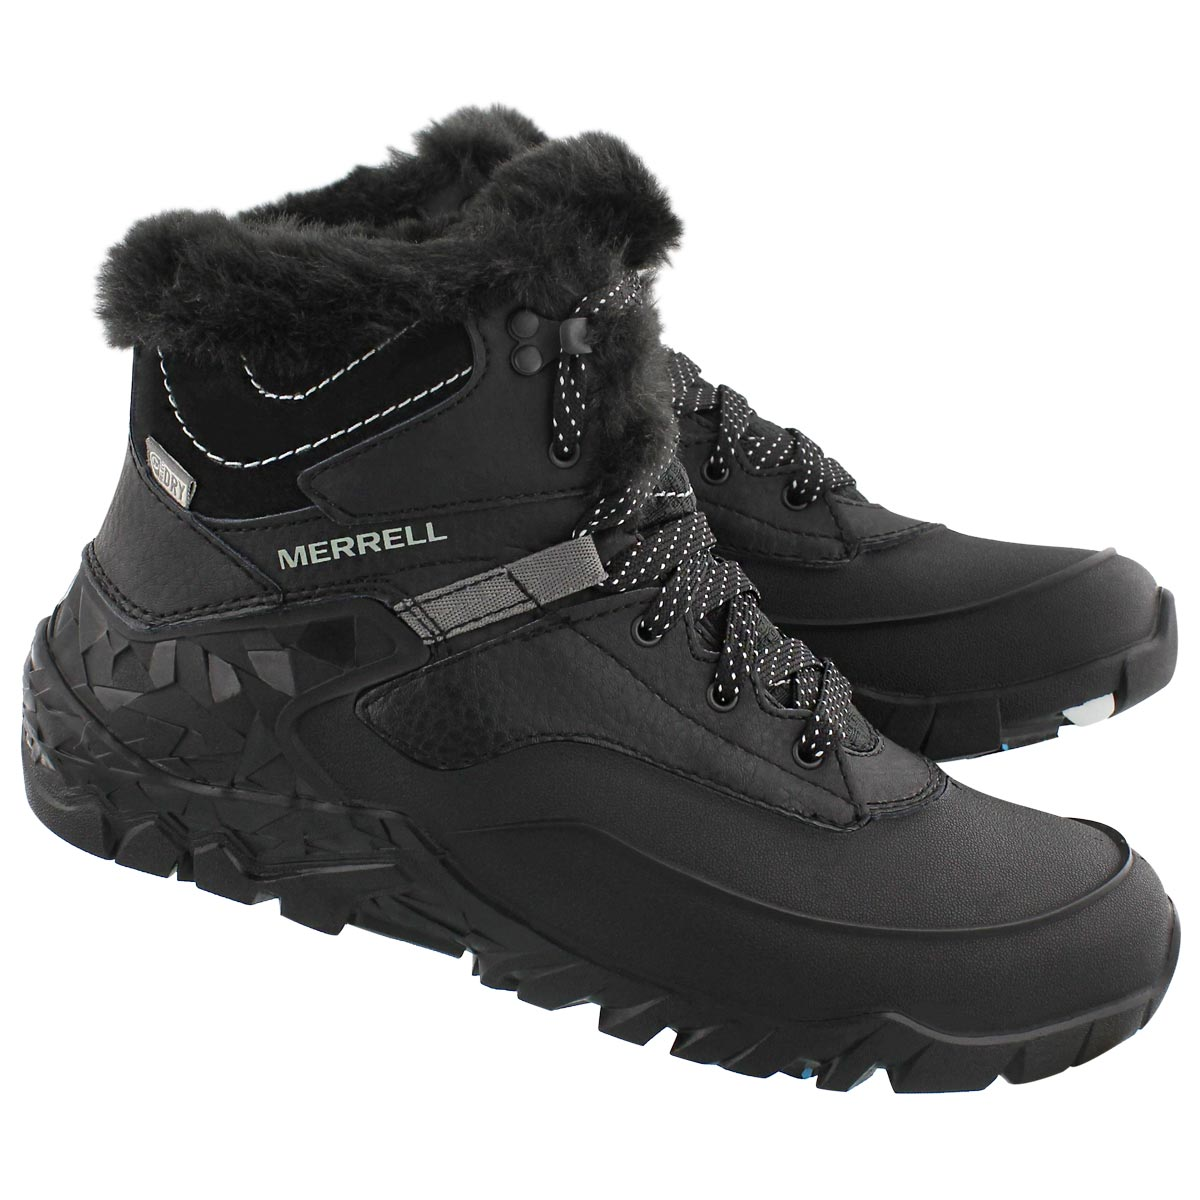 Lds Aurora 6 Ice blk wtpf winter boot